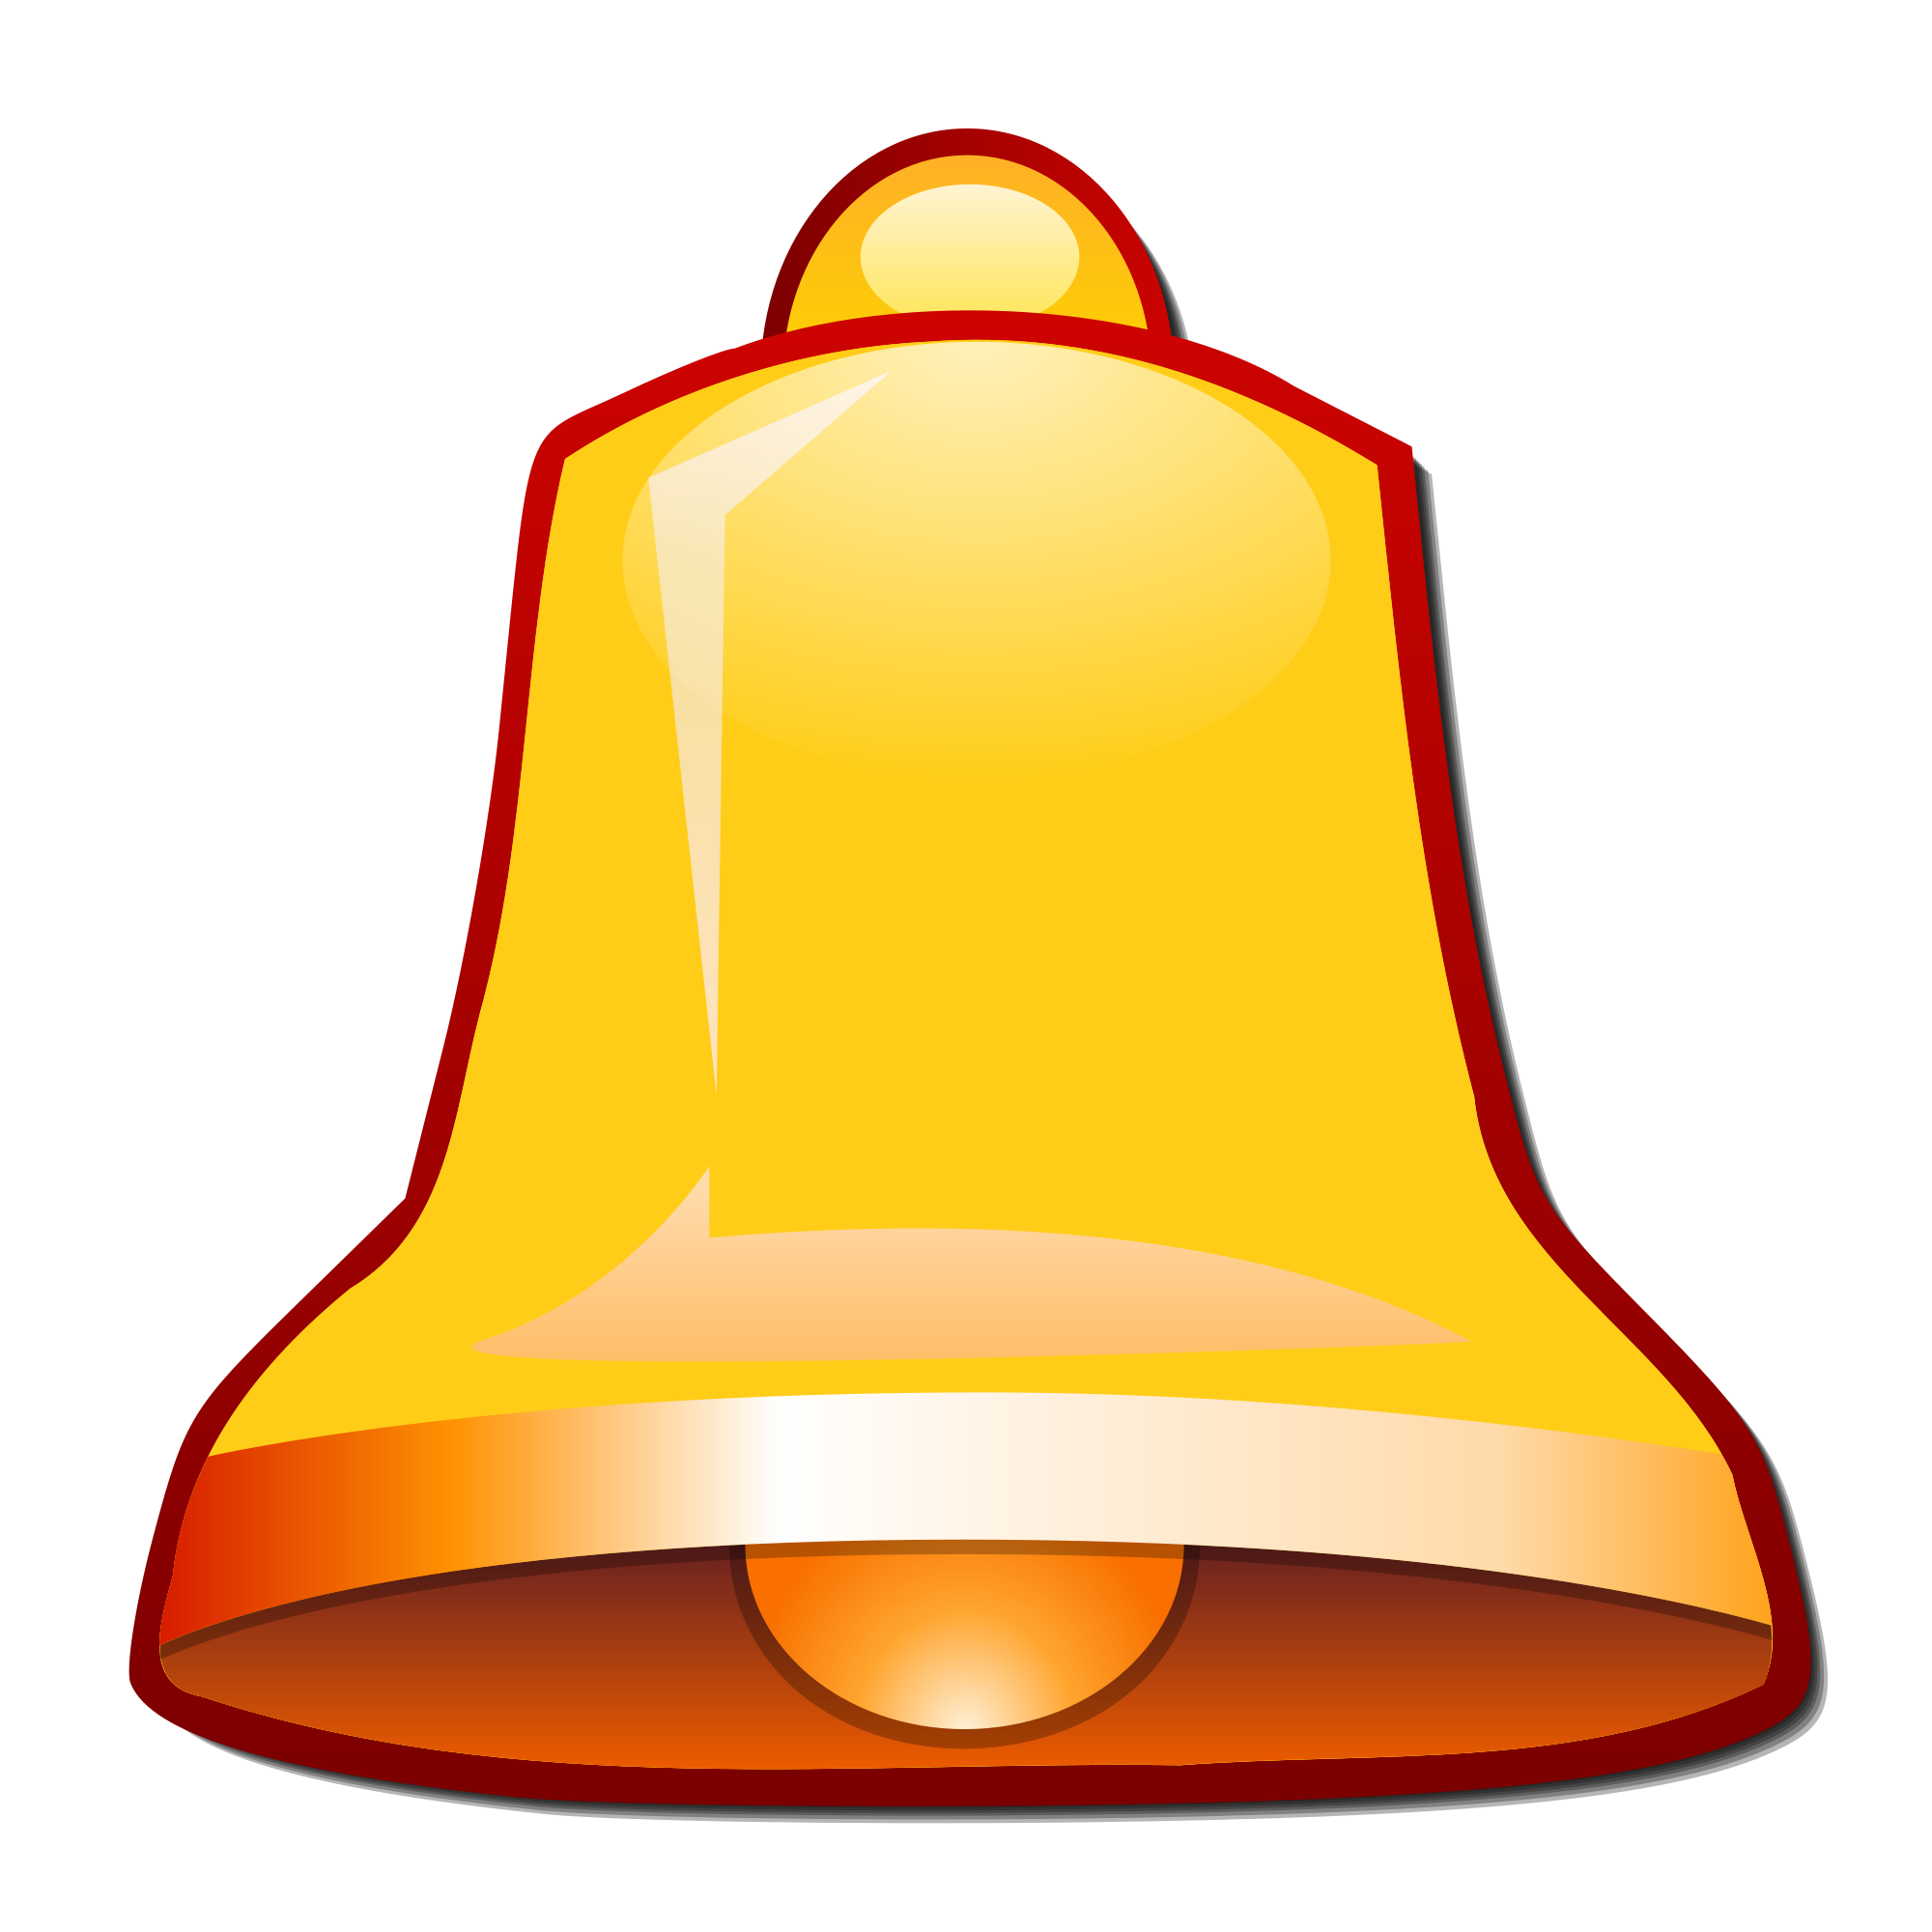 File:Nuvola apps bell.svg - Wikimedia Commons